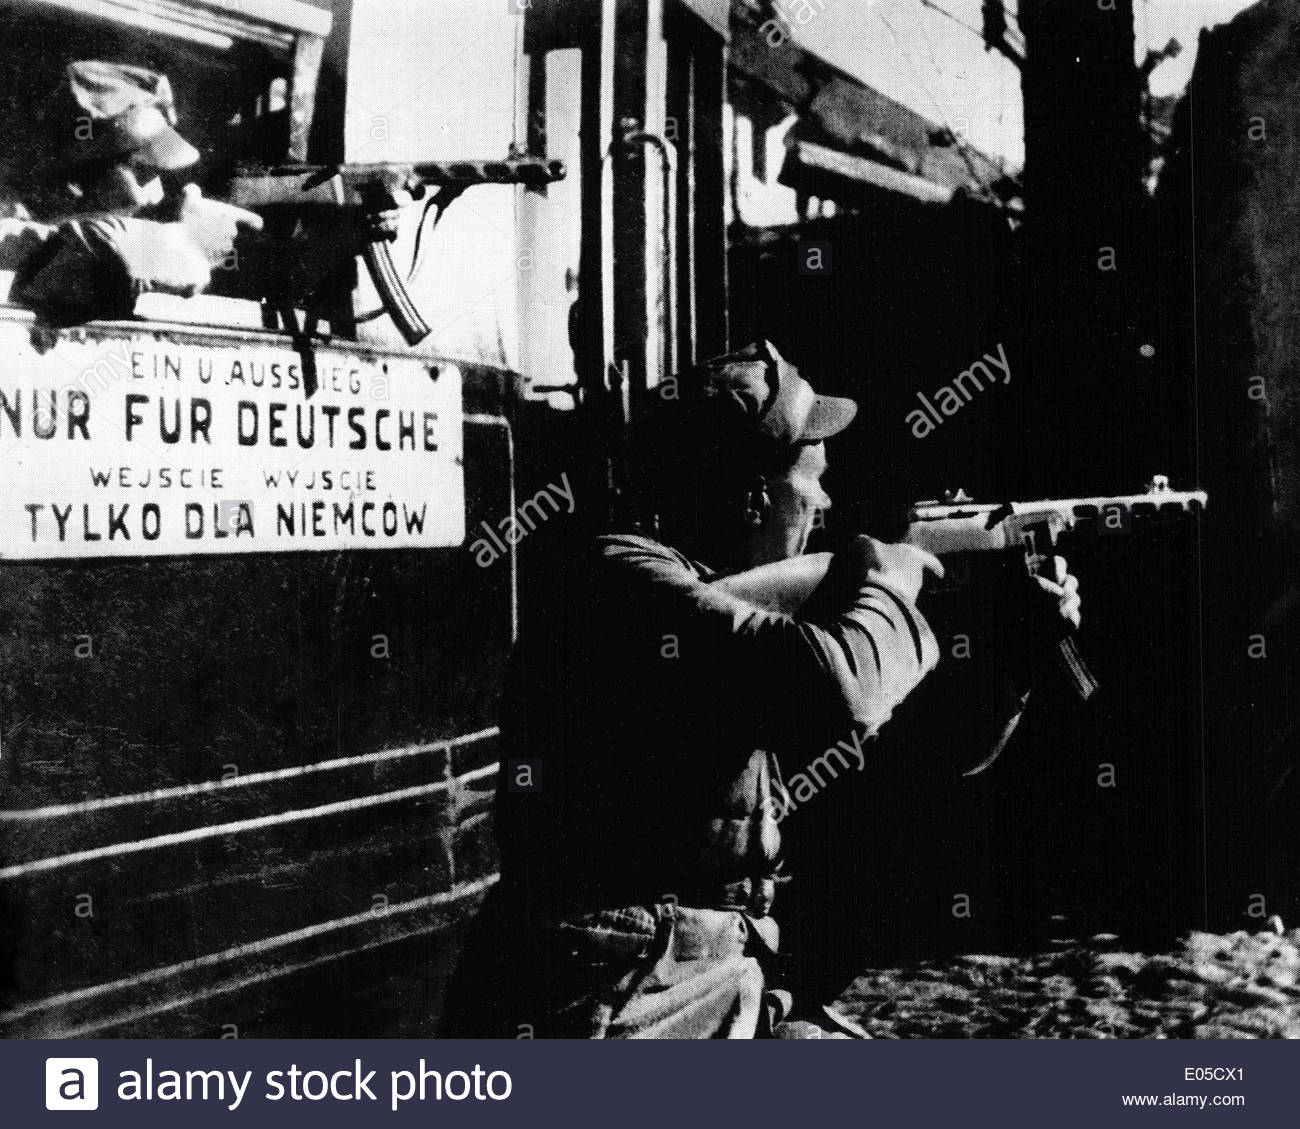 Street fight in Warsaw, Poland in the tramway depot during Second World War with the racist caption 'only for Germans' seen on the tram - Stock Image